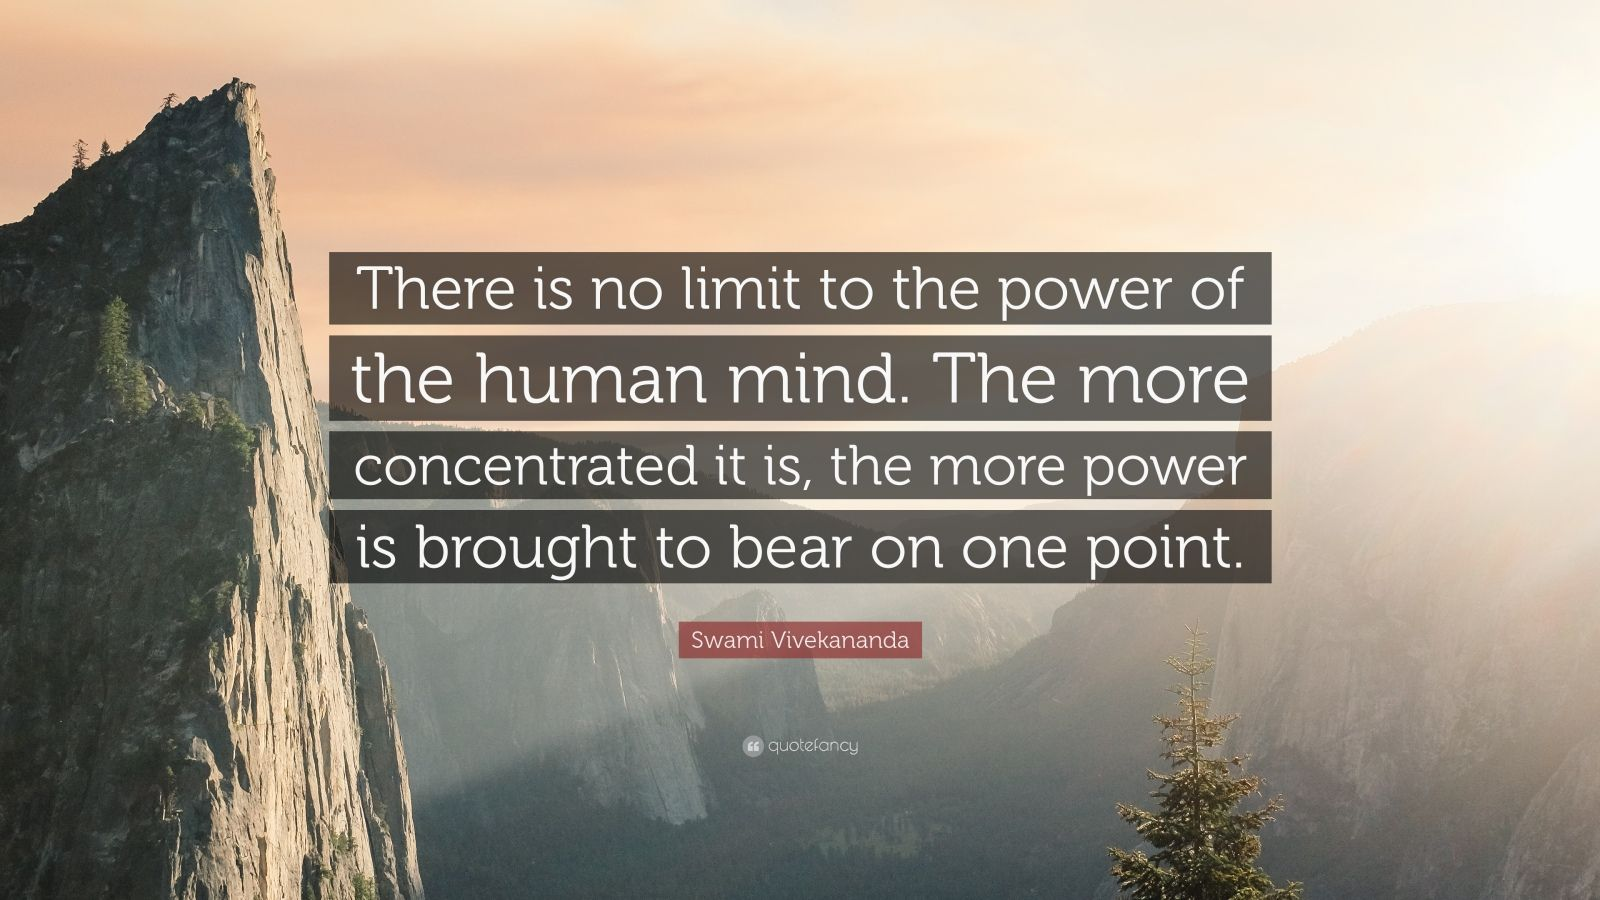 John Lennon Wallpaper Quotes Swami Vivekananda Quote There Is No Limit To The Power